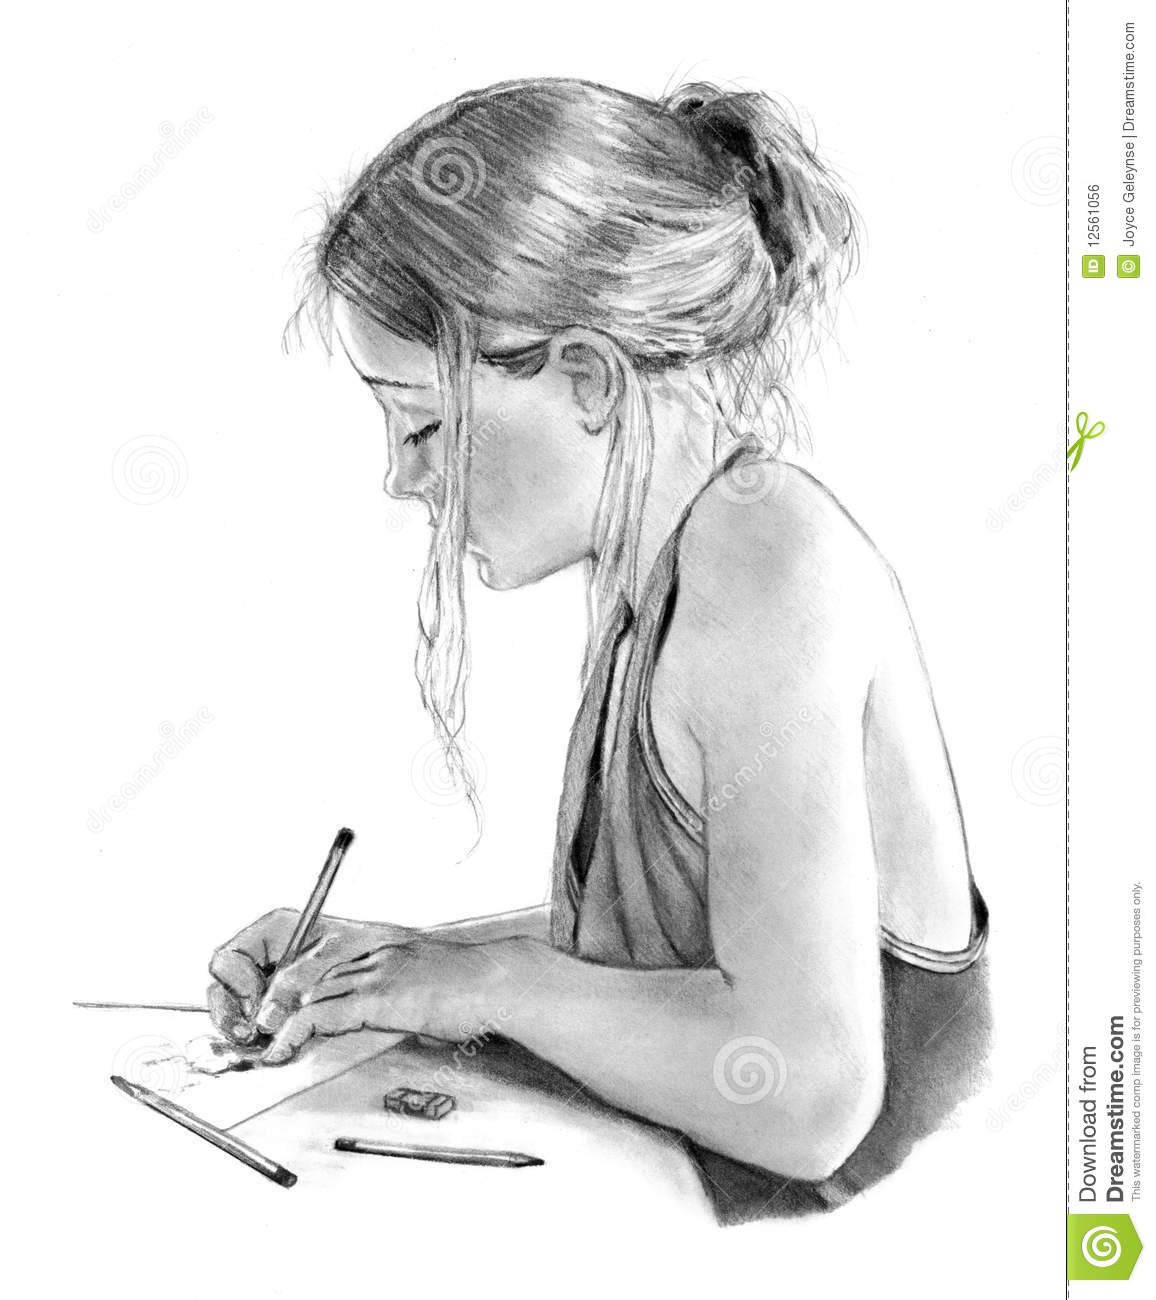 Story guardian Drawing images free download